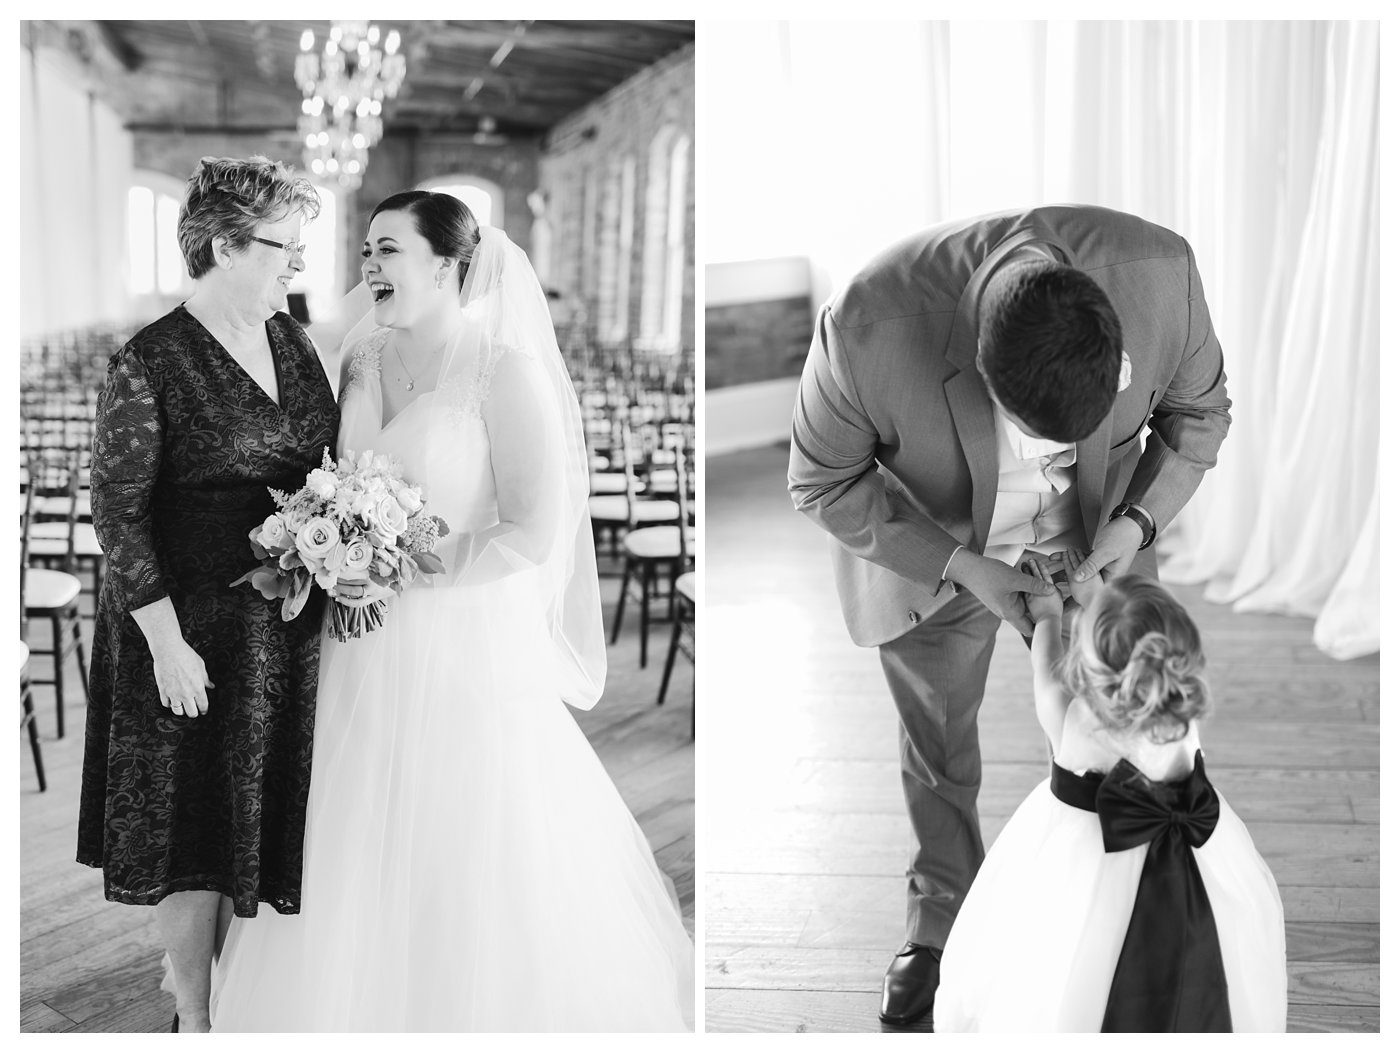 Melrose Knitting Mill Wedding in Downtown Raleigh